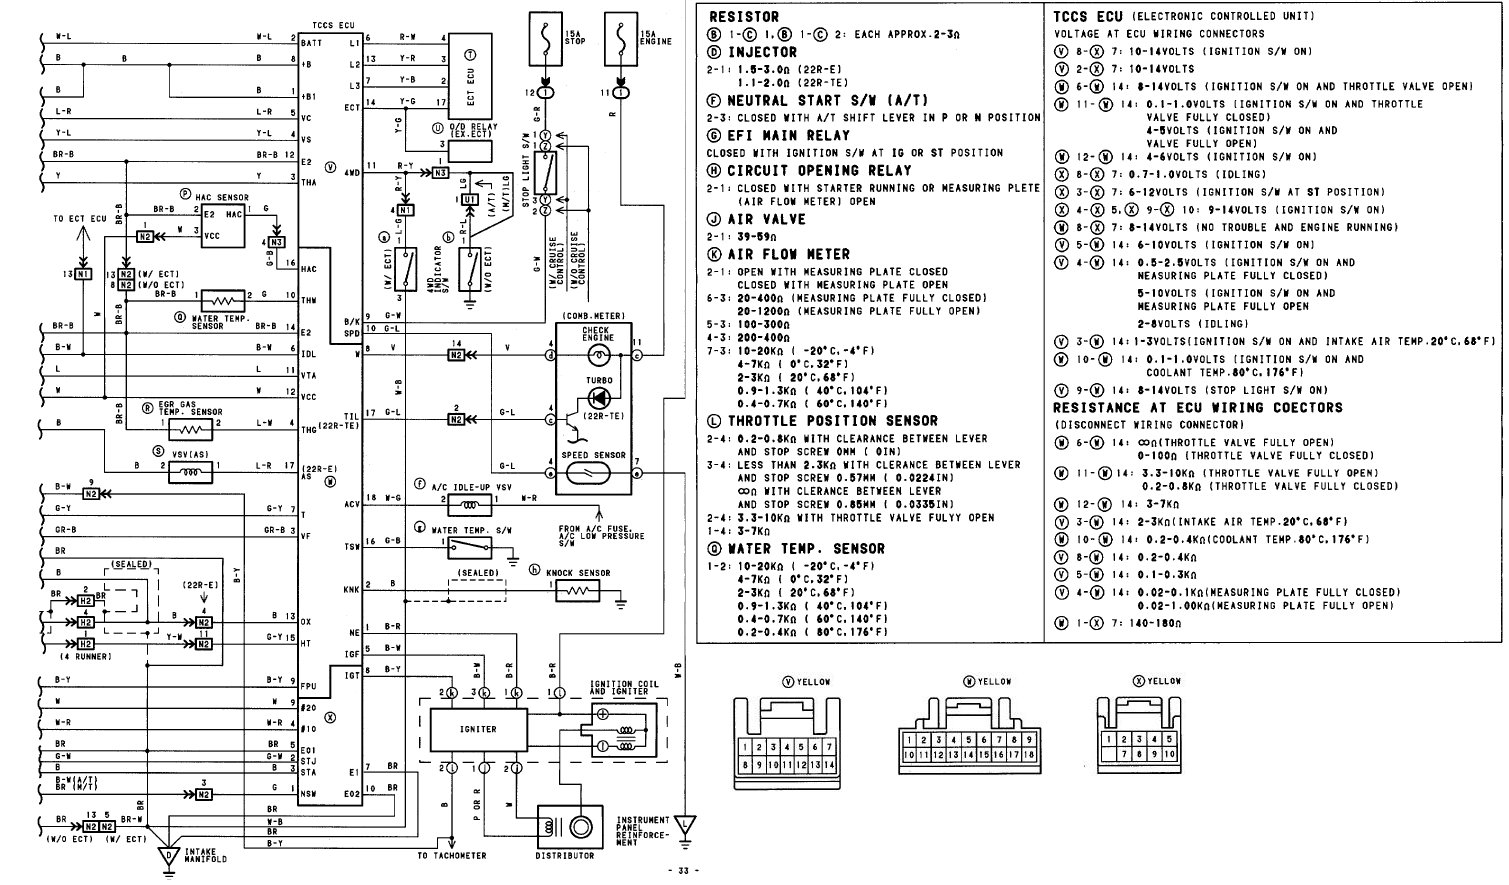 toyota 4runner wiring diagram jHkLHrj 2005 toyota 4runner wiring diagram wiring diagram simonand 2012 Tacoma Stereo Wiring Diagram at bakdesigns.co